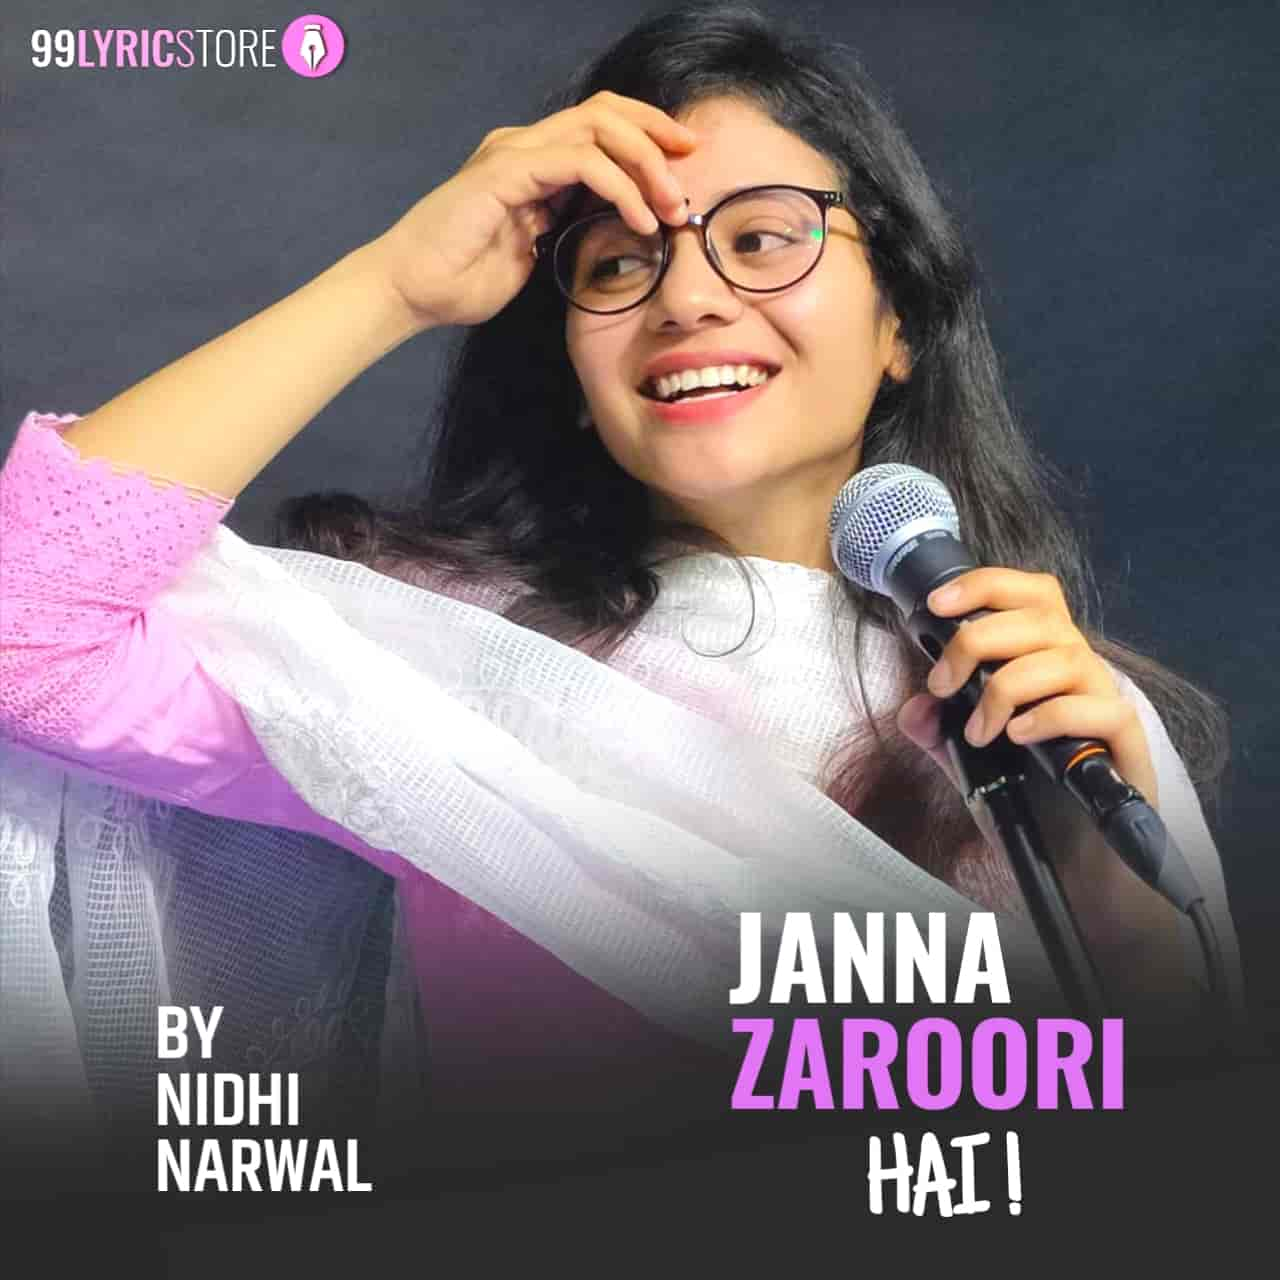 "Janna Zaroori Hai Poetry Lyrics :- A famous young poetess Nidhi Narwal given a suprise to her every fans and supporters by giving a beautiful poetry which is titled ""Janna Zaroori Hai"" performed and written by by her under the own label of NIDHI NARWAL. Everyone excited to listen this beautiful poetry if you too so read this poetry and have a joy. Thanks!"